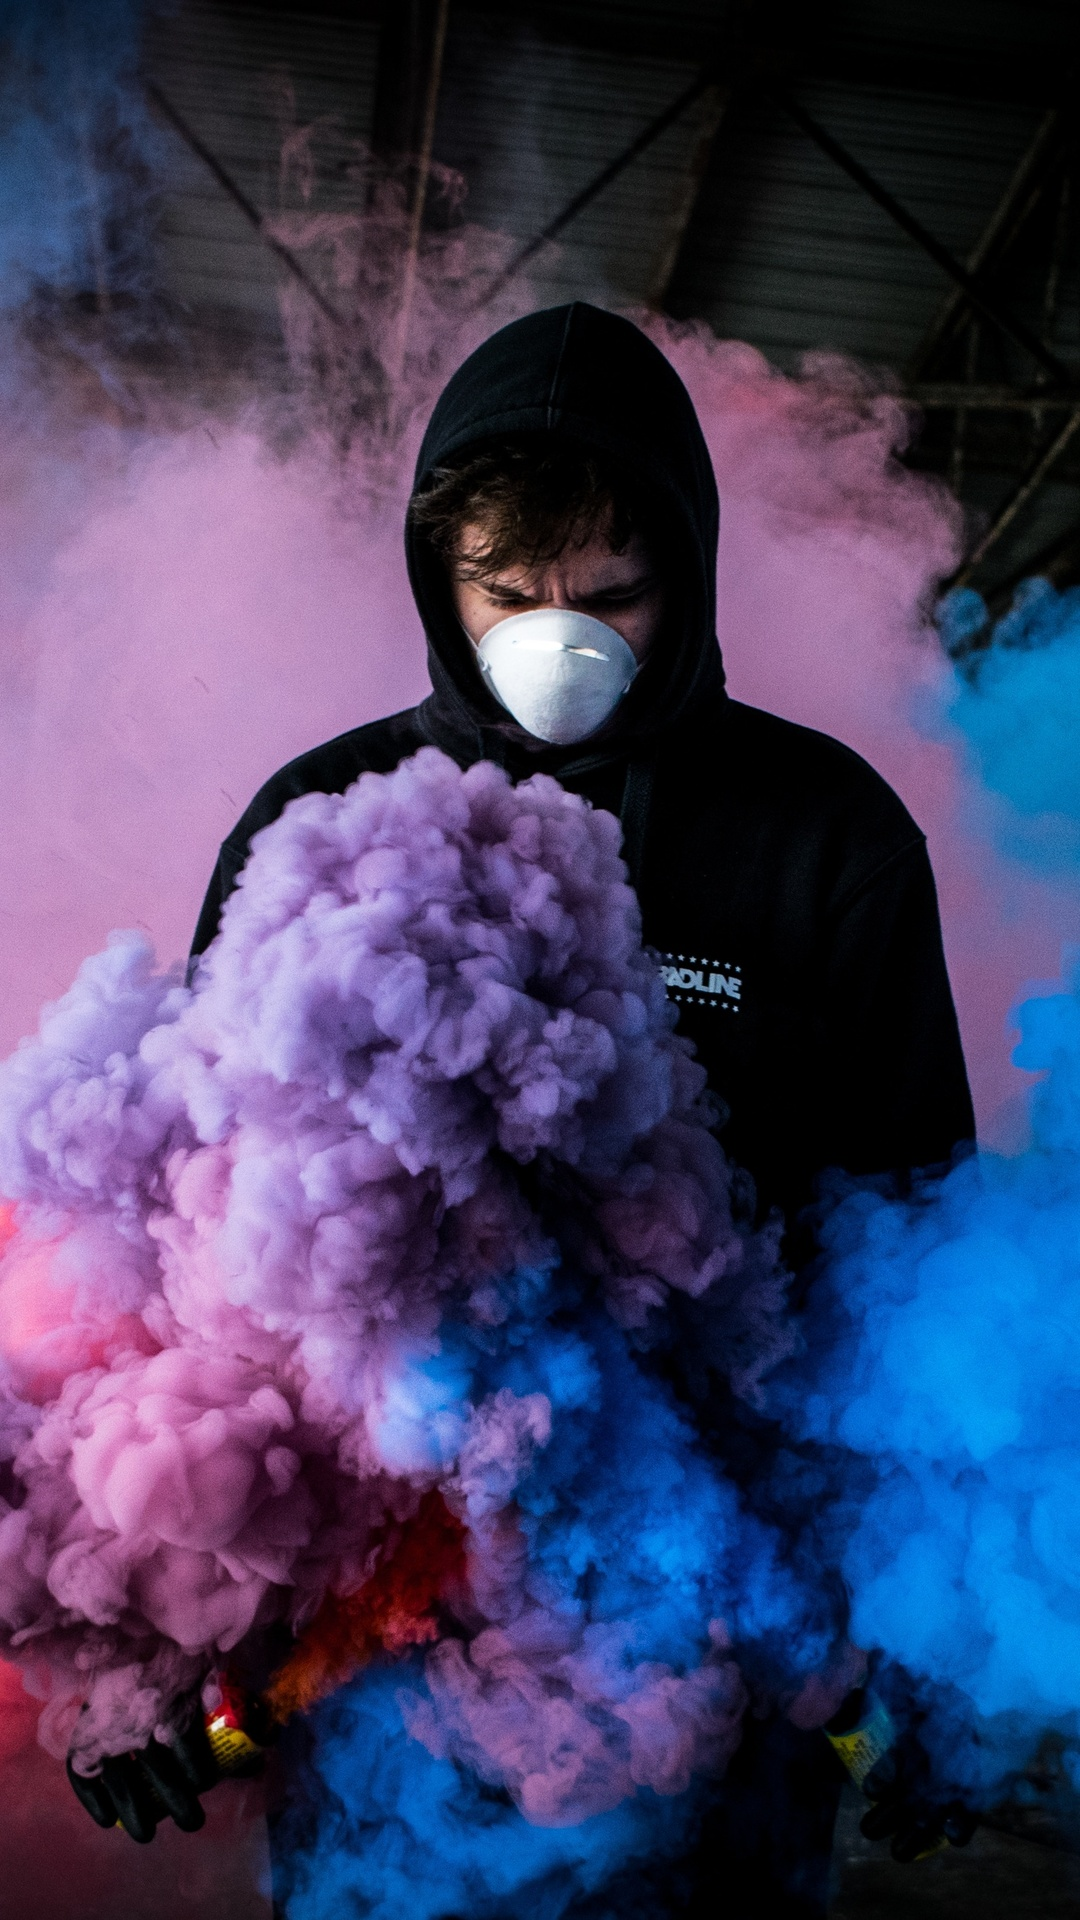 1080x1920 Boy With Smoke Bomb Colorful 5k Iphone 7 6s 6 Plus Pixel